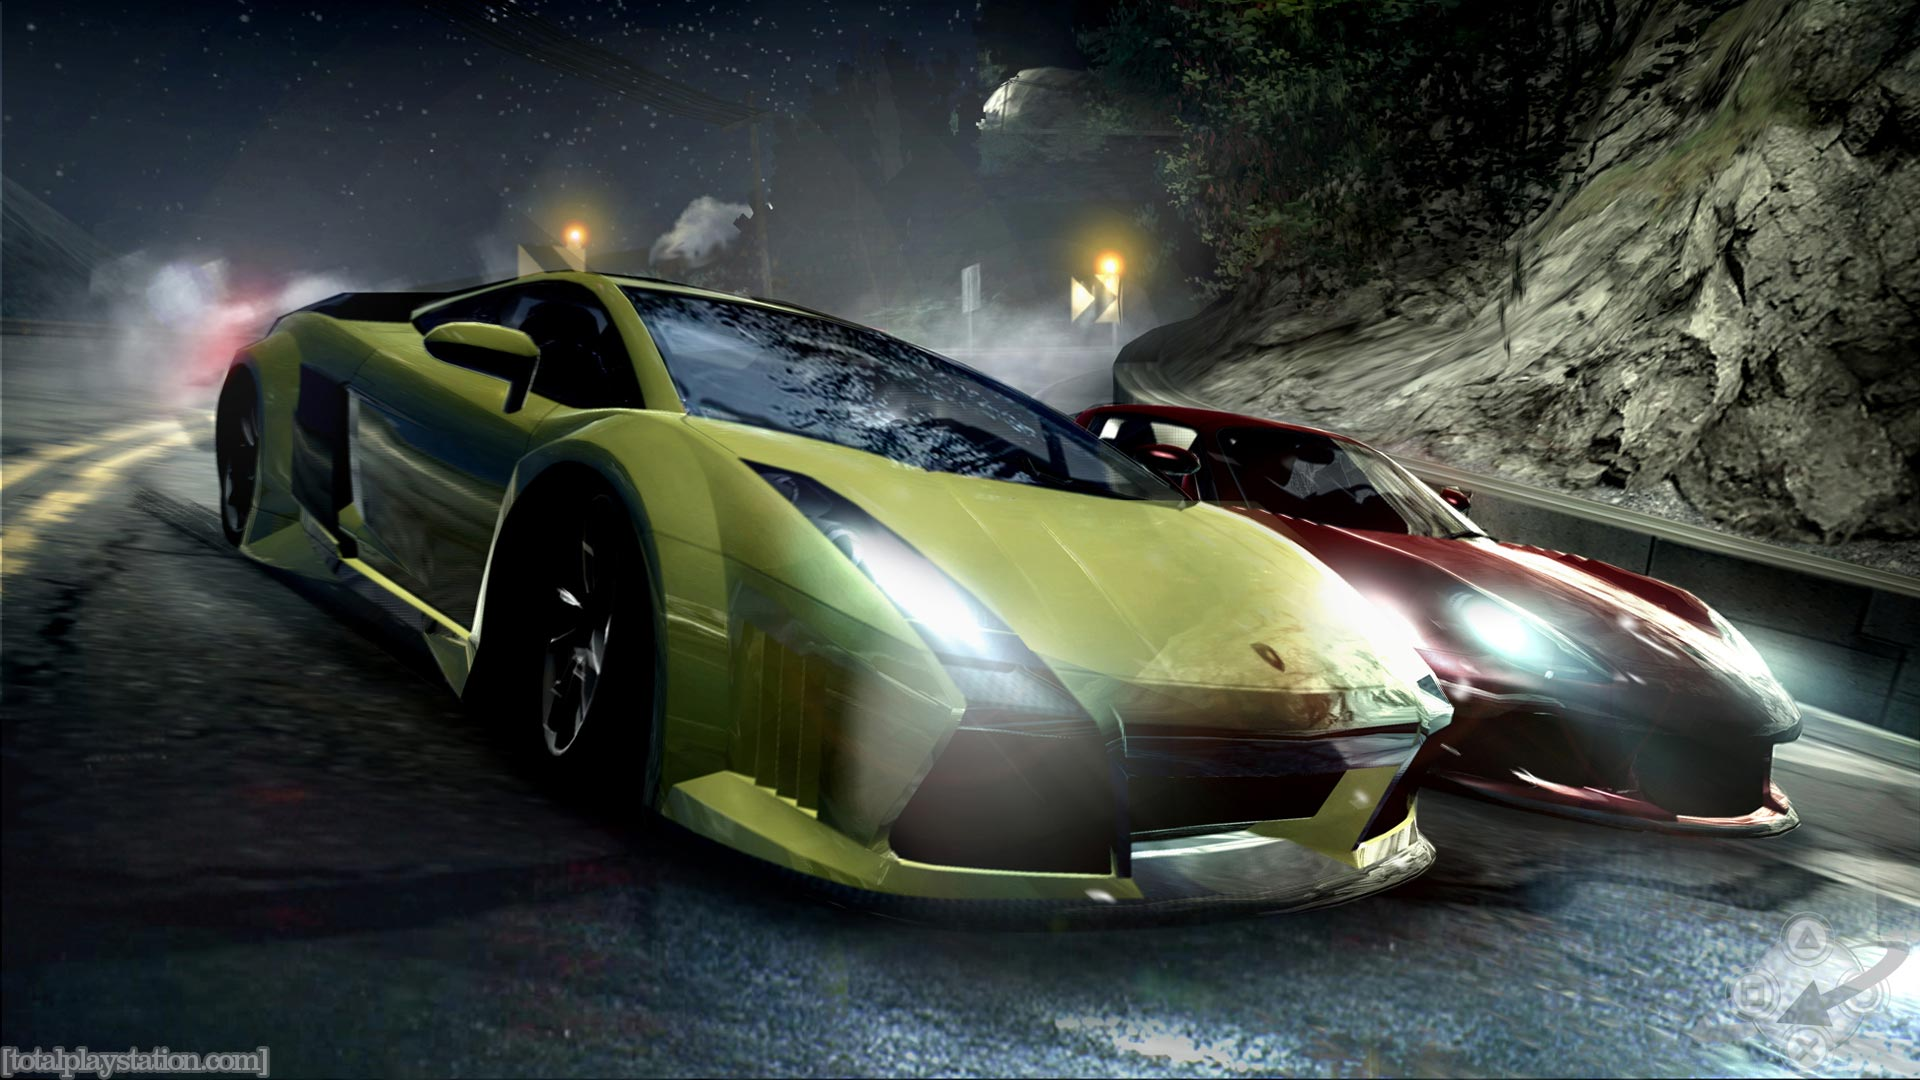 Need For Speed Iphone Wallpaper 1920x1080